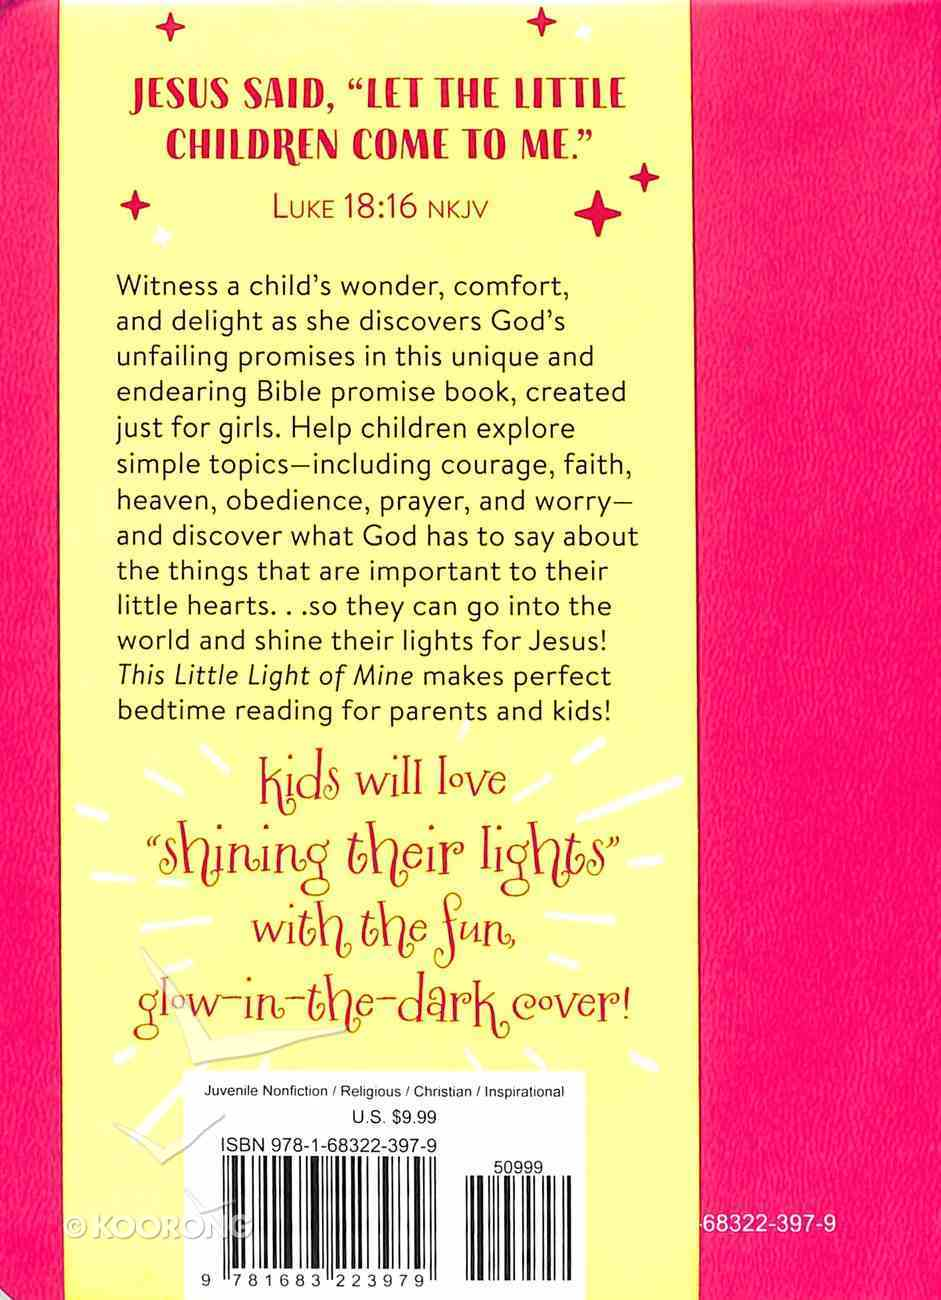 This Little Light of Mine: The Bible Promise Book For Girls Paperback